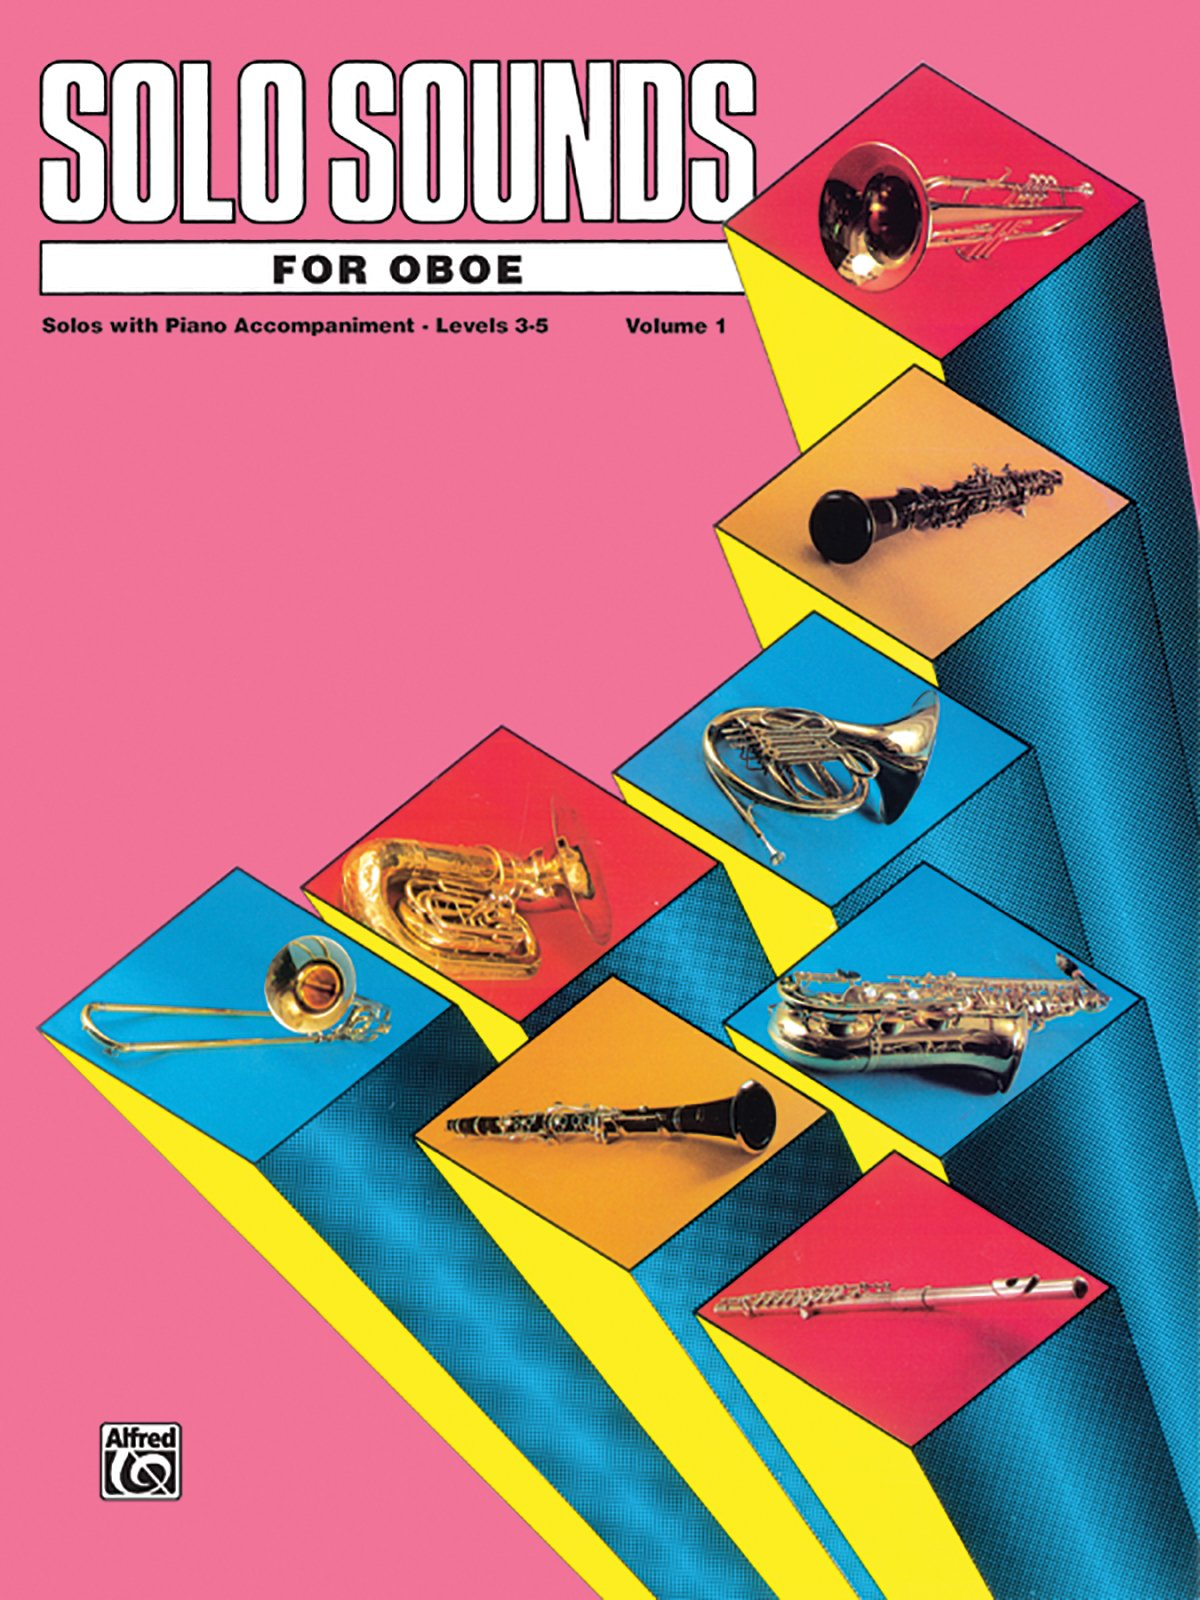 Solo Sounds for Oboe, Vol 1: Levels 3-5 Piano Acc.